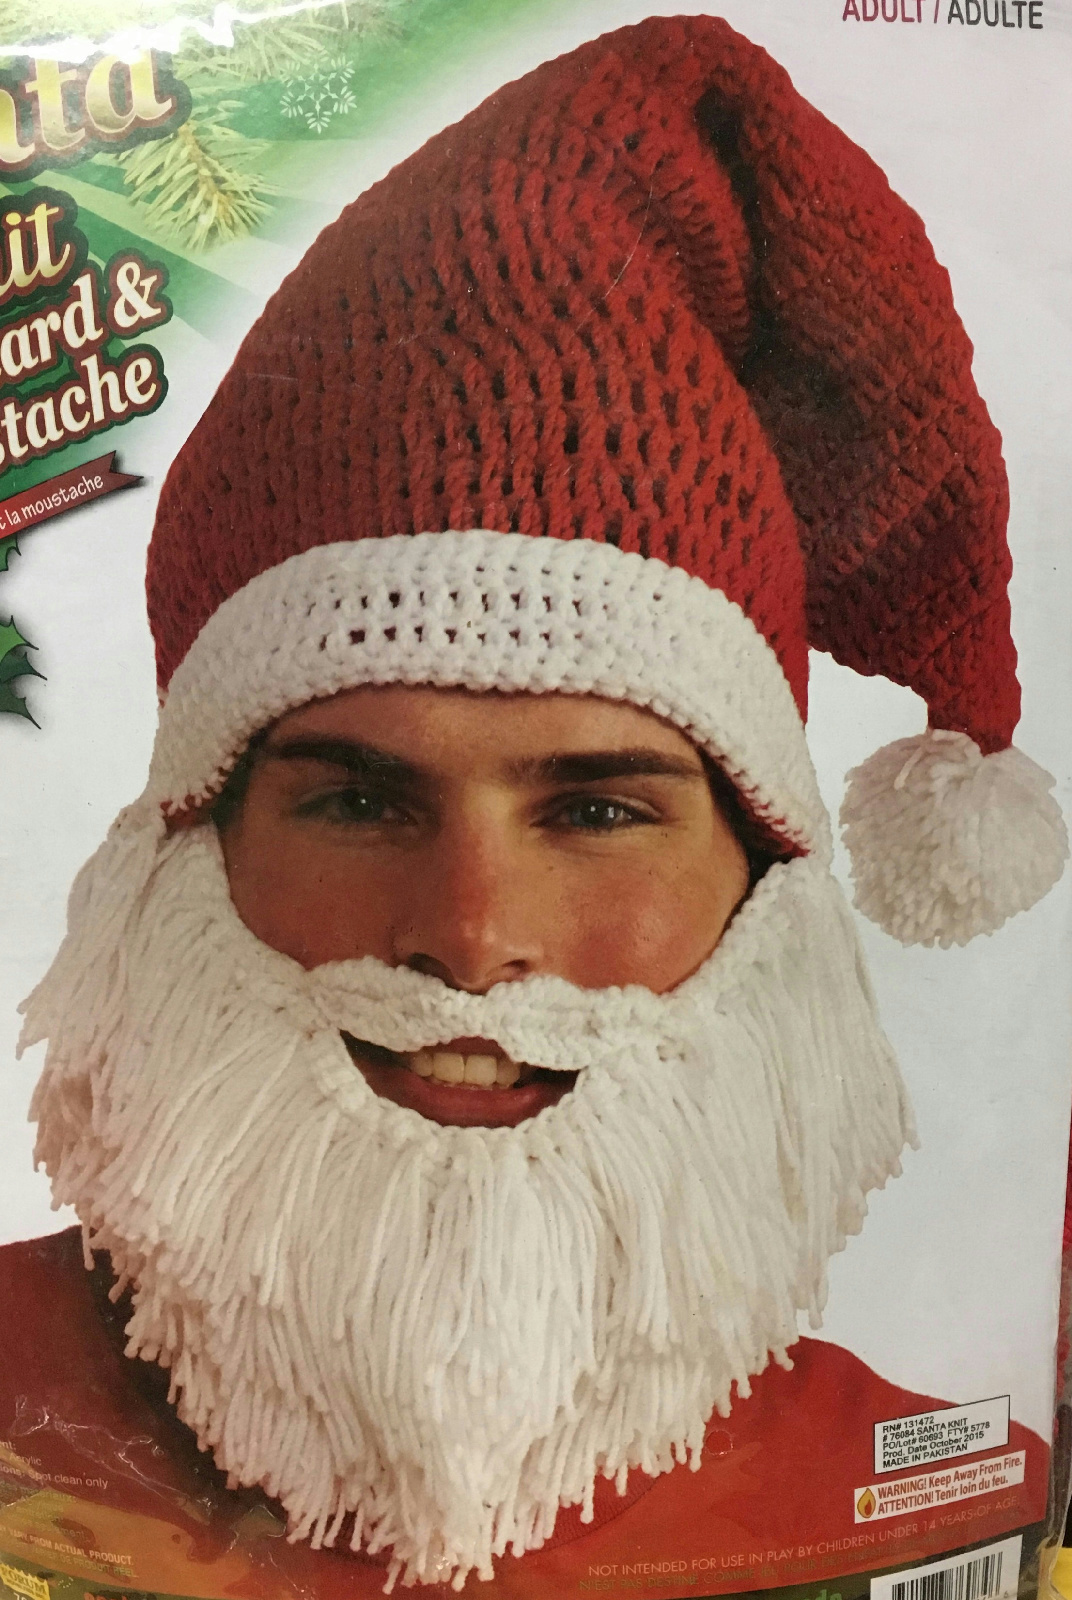 Details about Santa Claus Knit Hat with Attached Beard and Mustache Fun  Christmas Accessory bbd2e1ccef3